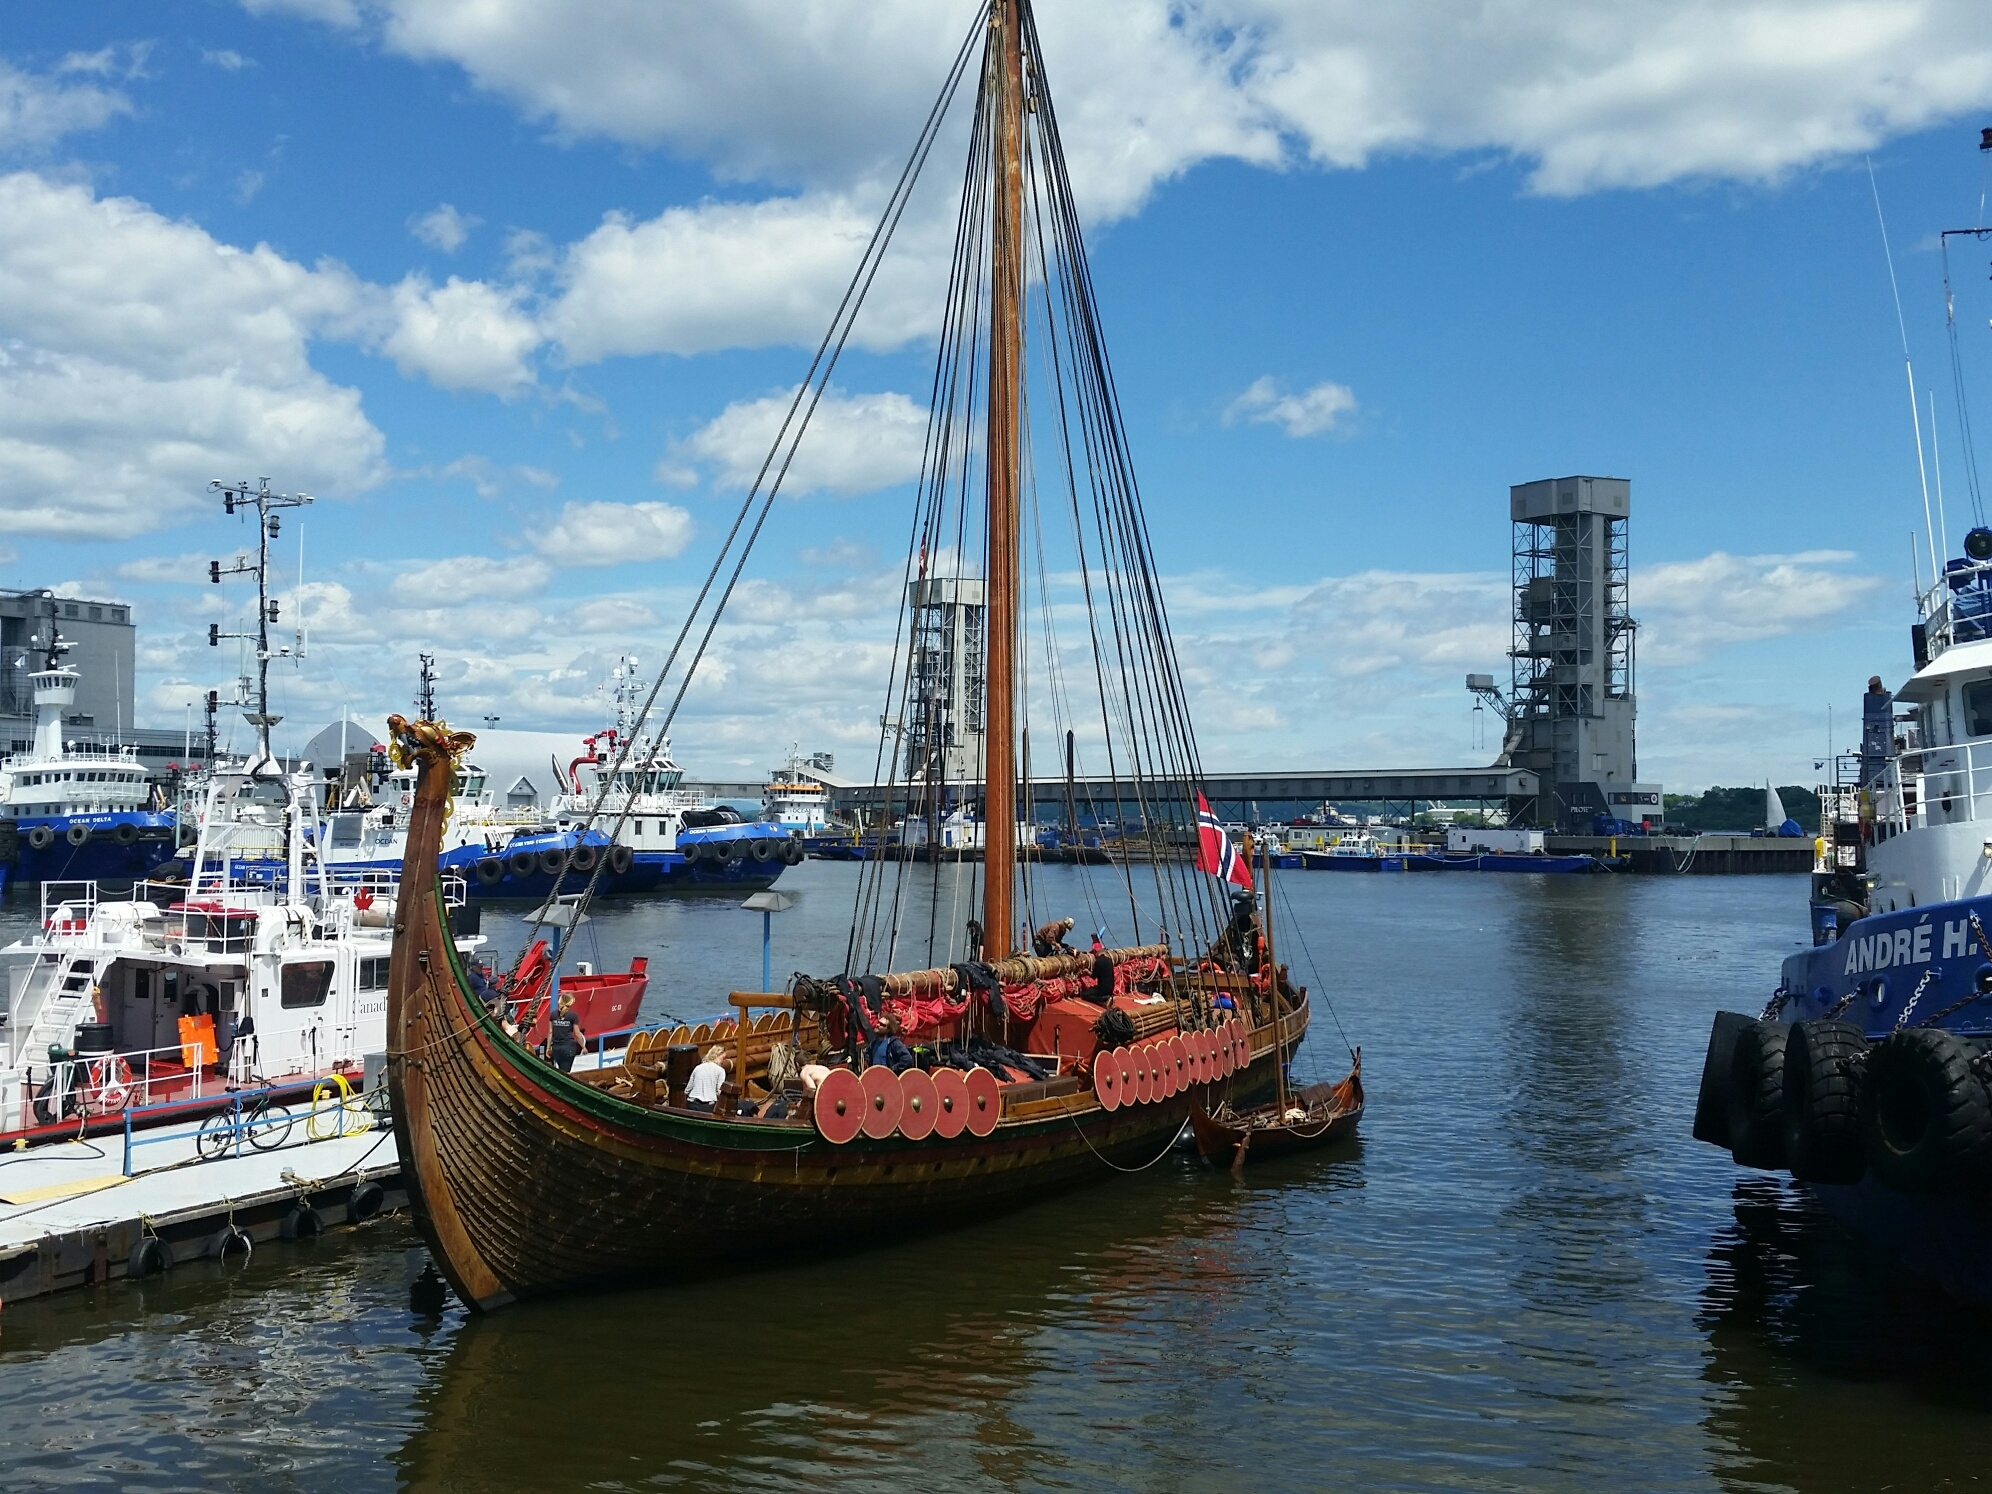 Zoner James Howard is sailing on a Viking boat from Norway!